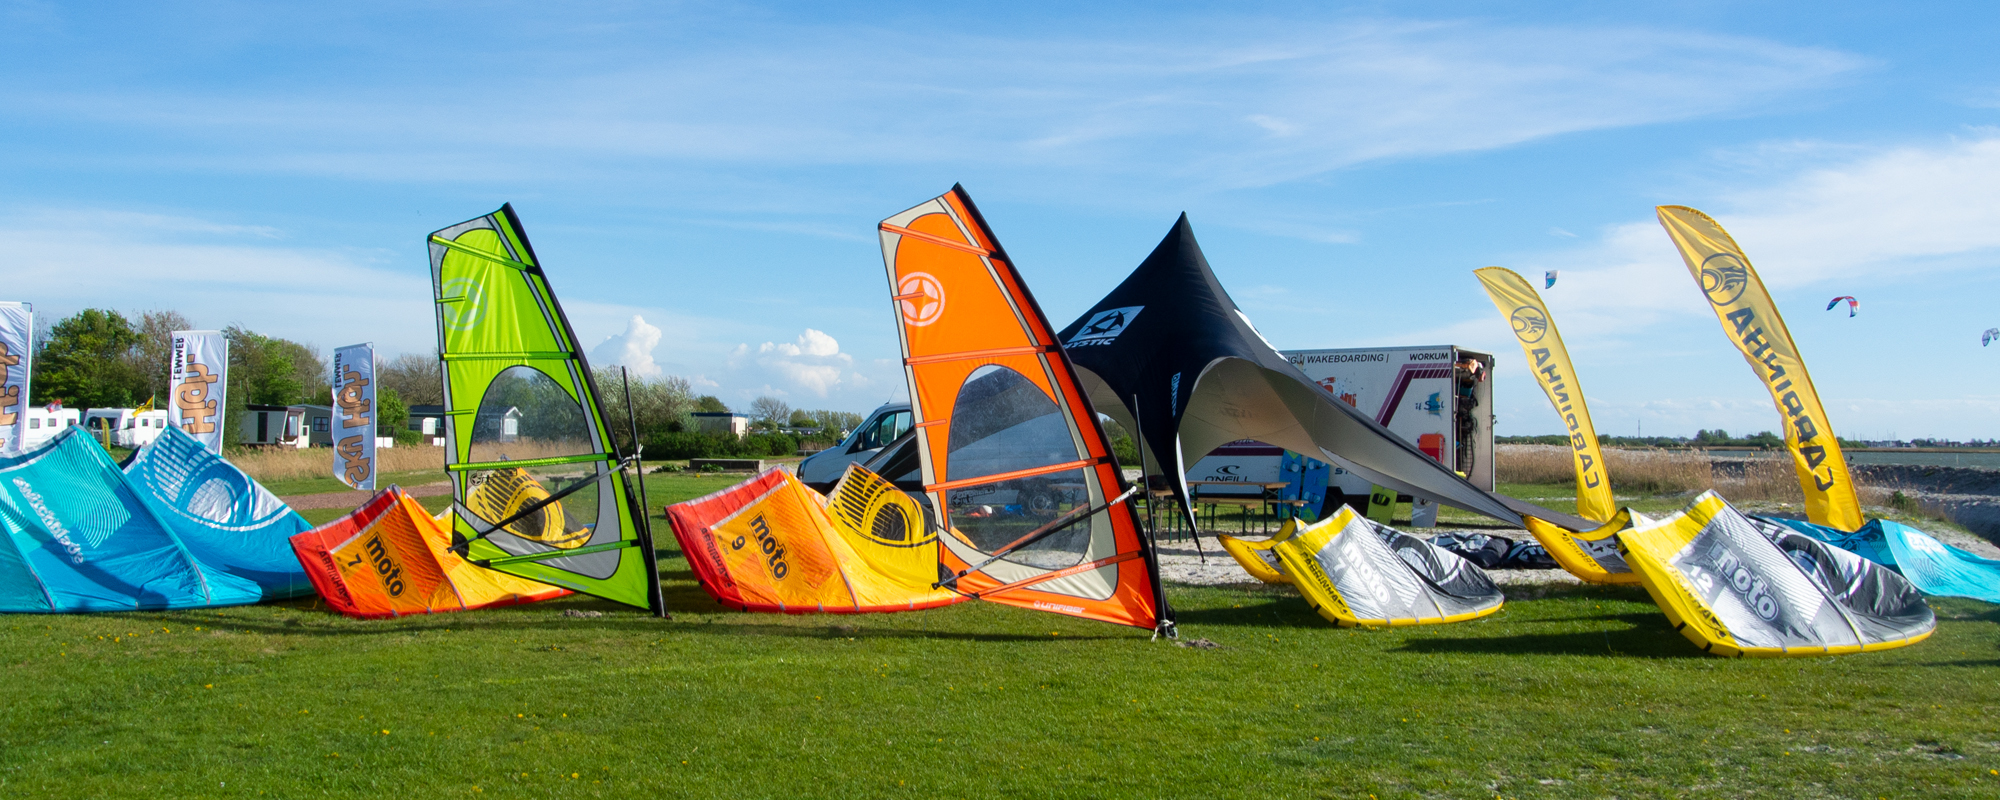 Windsurf verhuur header